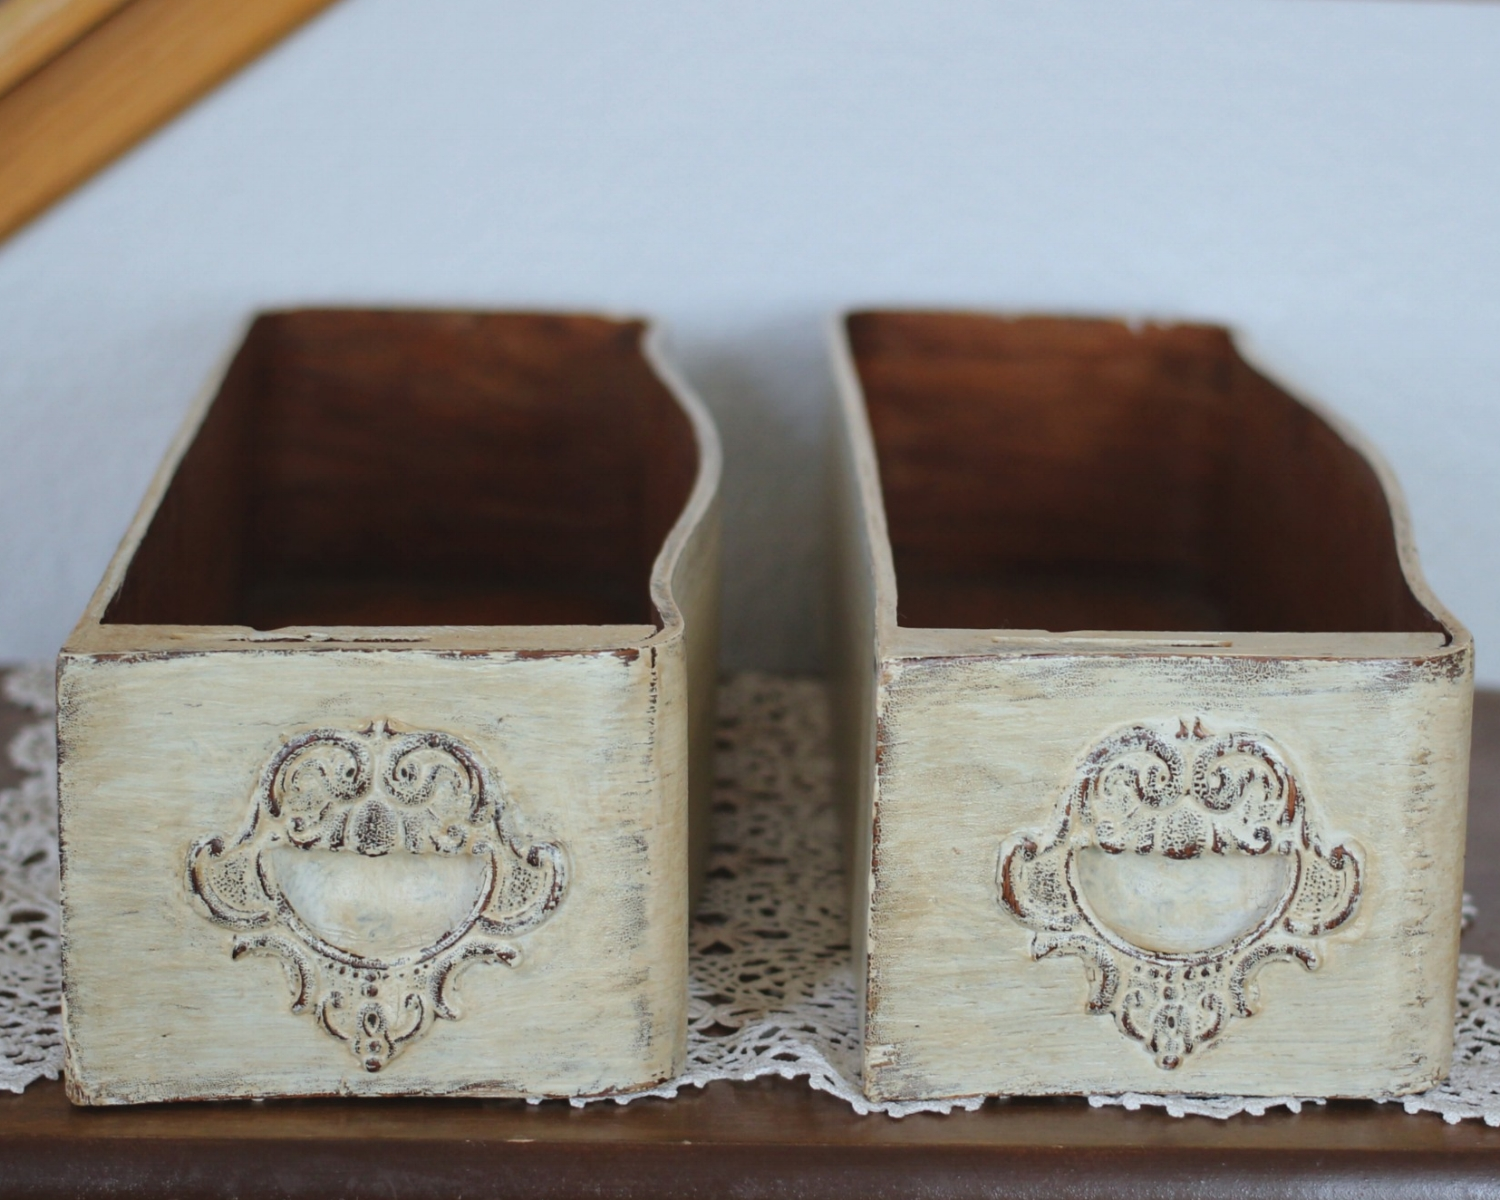 VINTAGE WHITE SEWING MACHINE DRAWERS $10 EACH    MORE DETAILS & PICS...